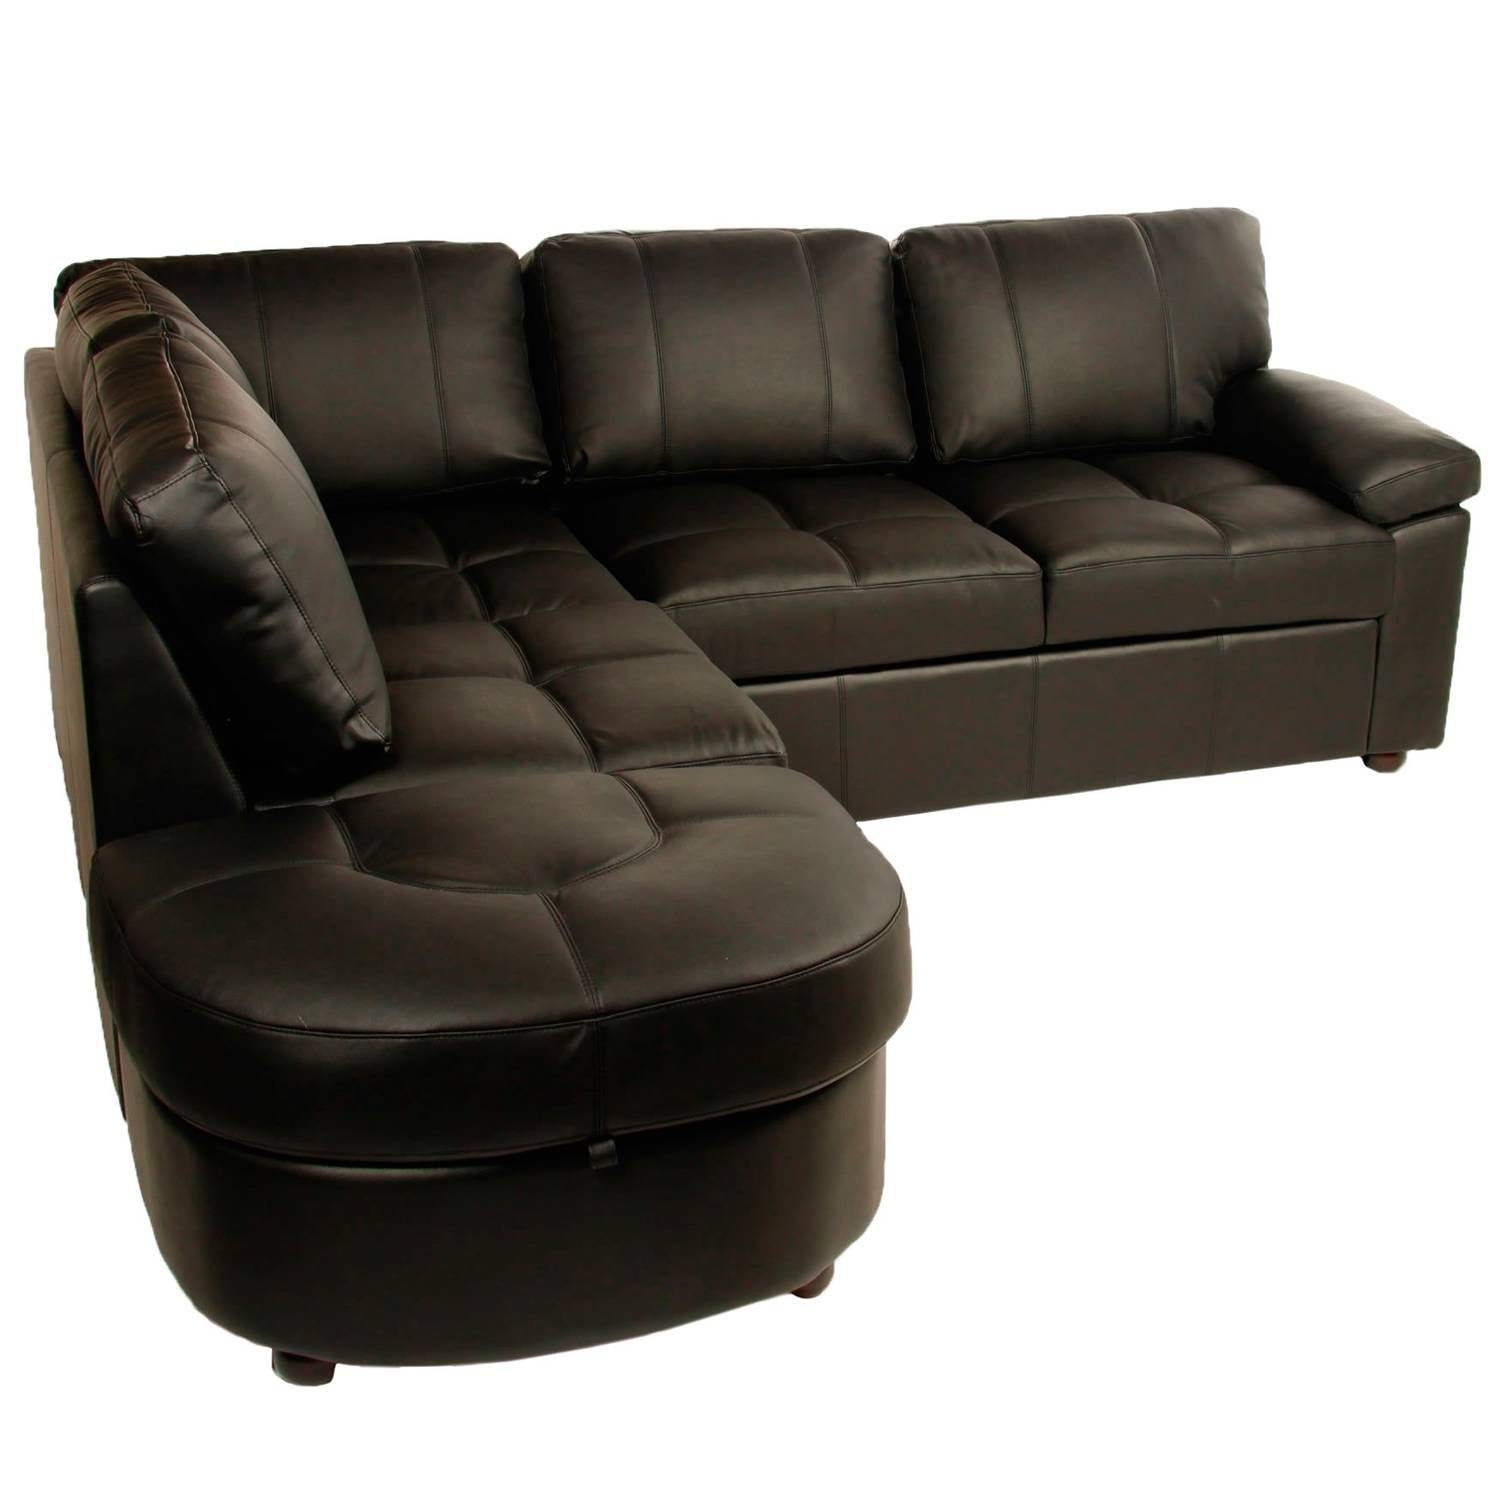 Sofas Center : Unusual Corner Sofa Withrage Picture Design Large inside Leather Storage Sofas (Image 28 of 30)